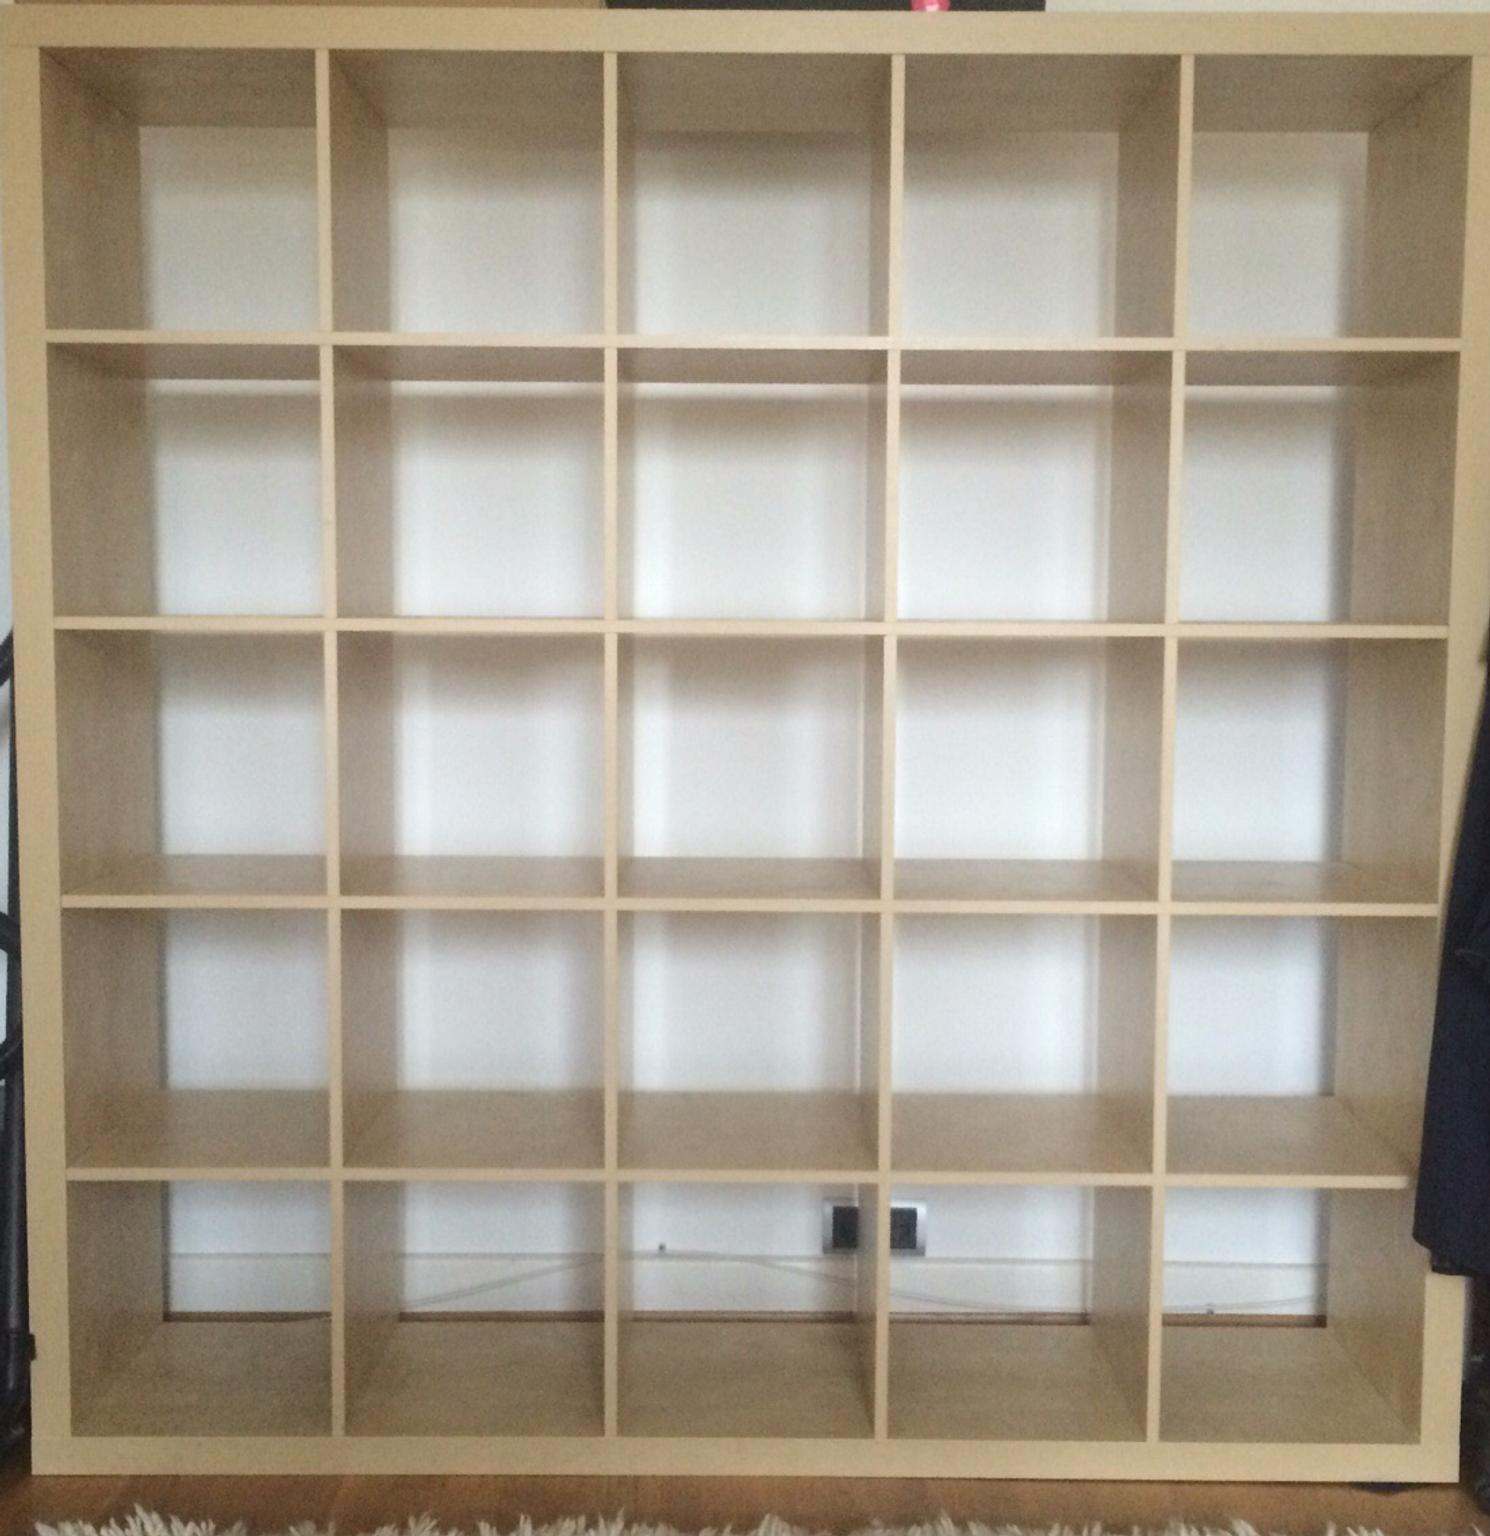 Ikea Expedit Regal Weiss inkl. Kisten in 40476 Düsseldorf